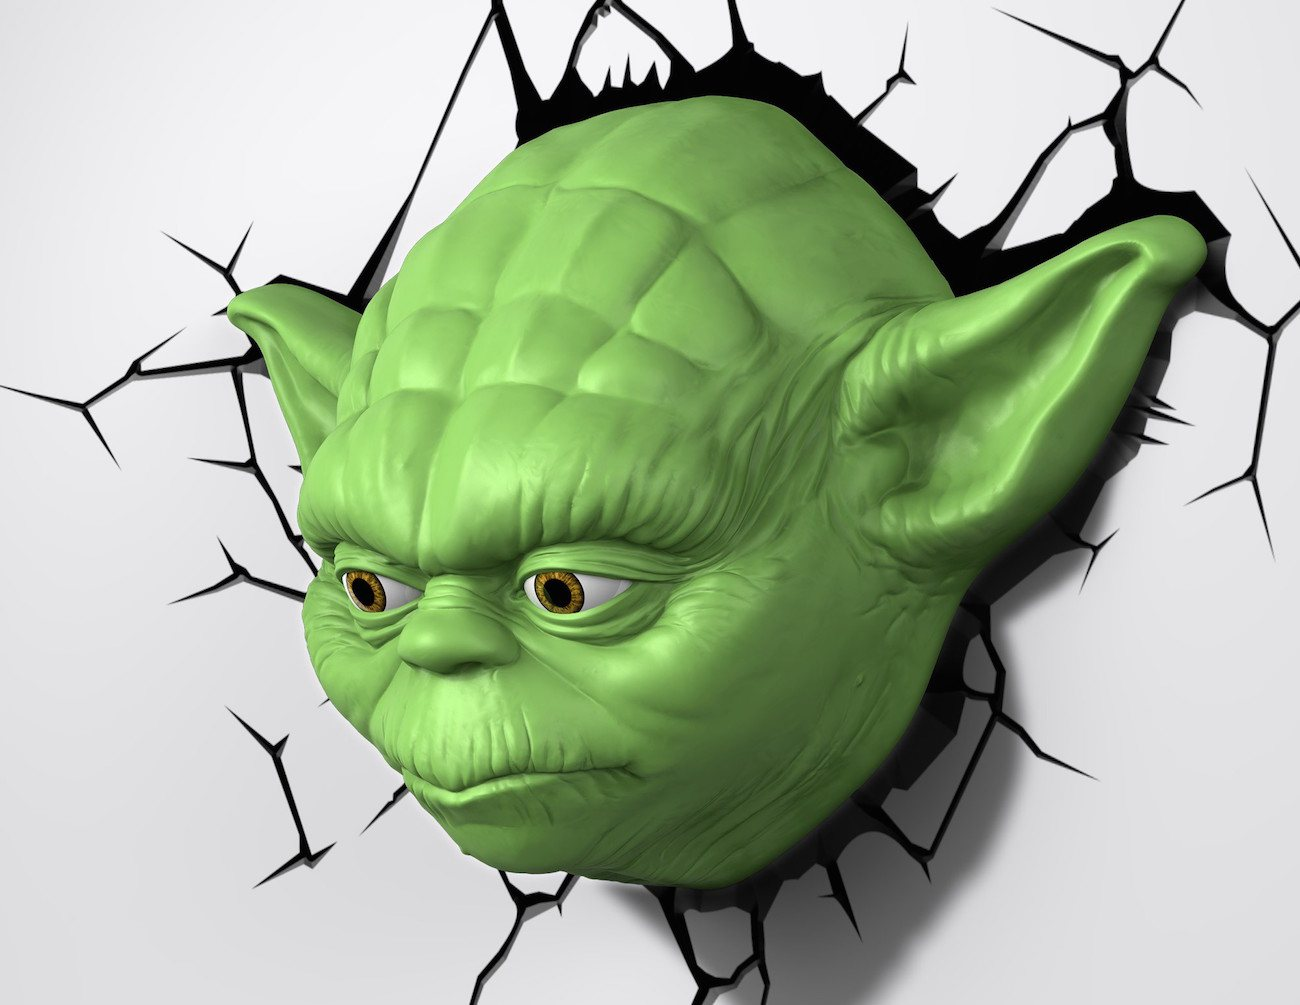 star wars yoda cartoon www pixshark com images galleries with a bite Free Music Clip Art free clip art cd rom